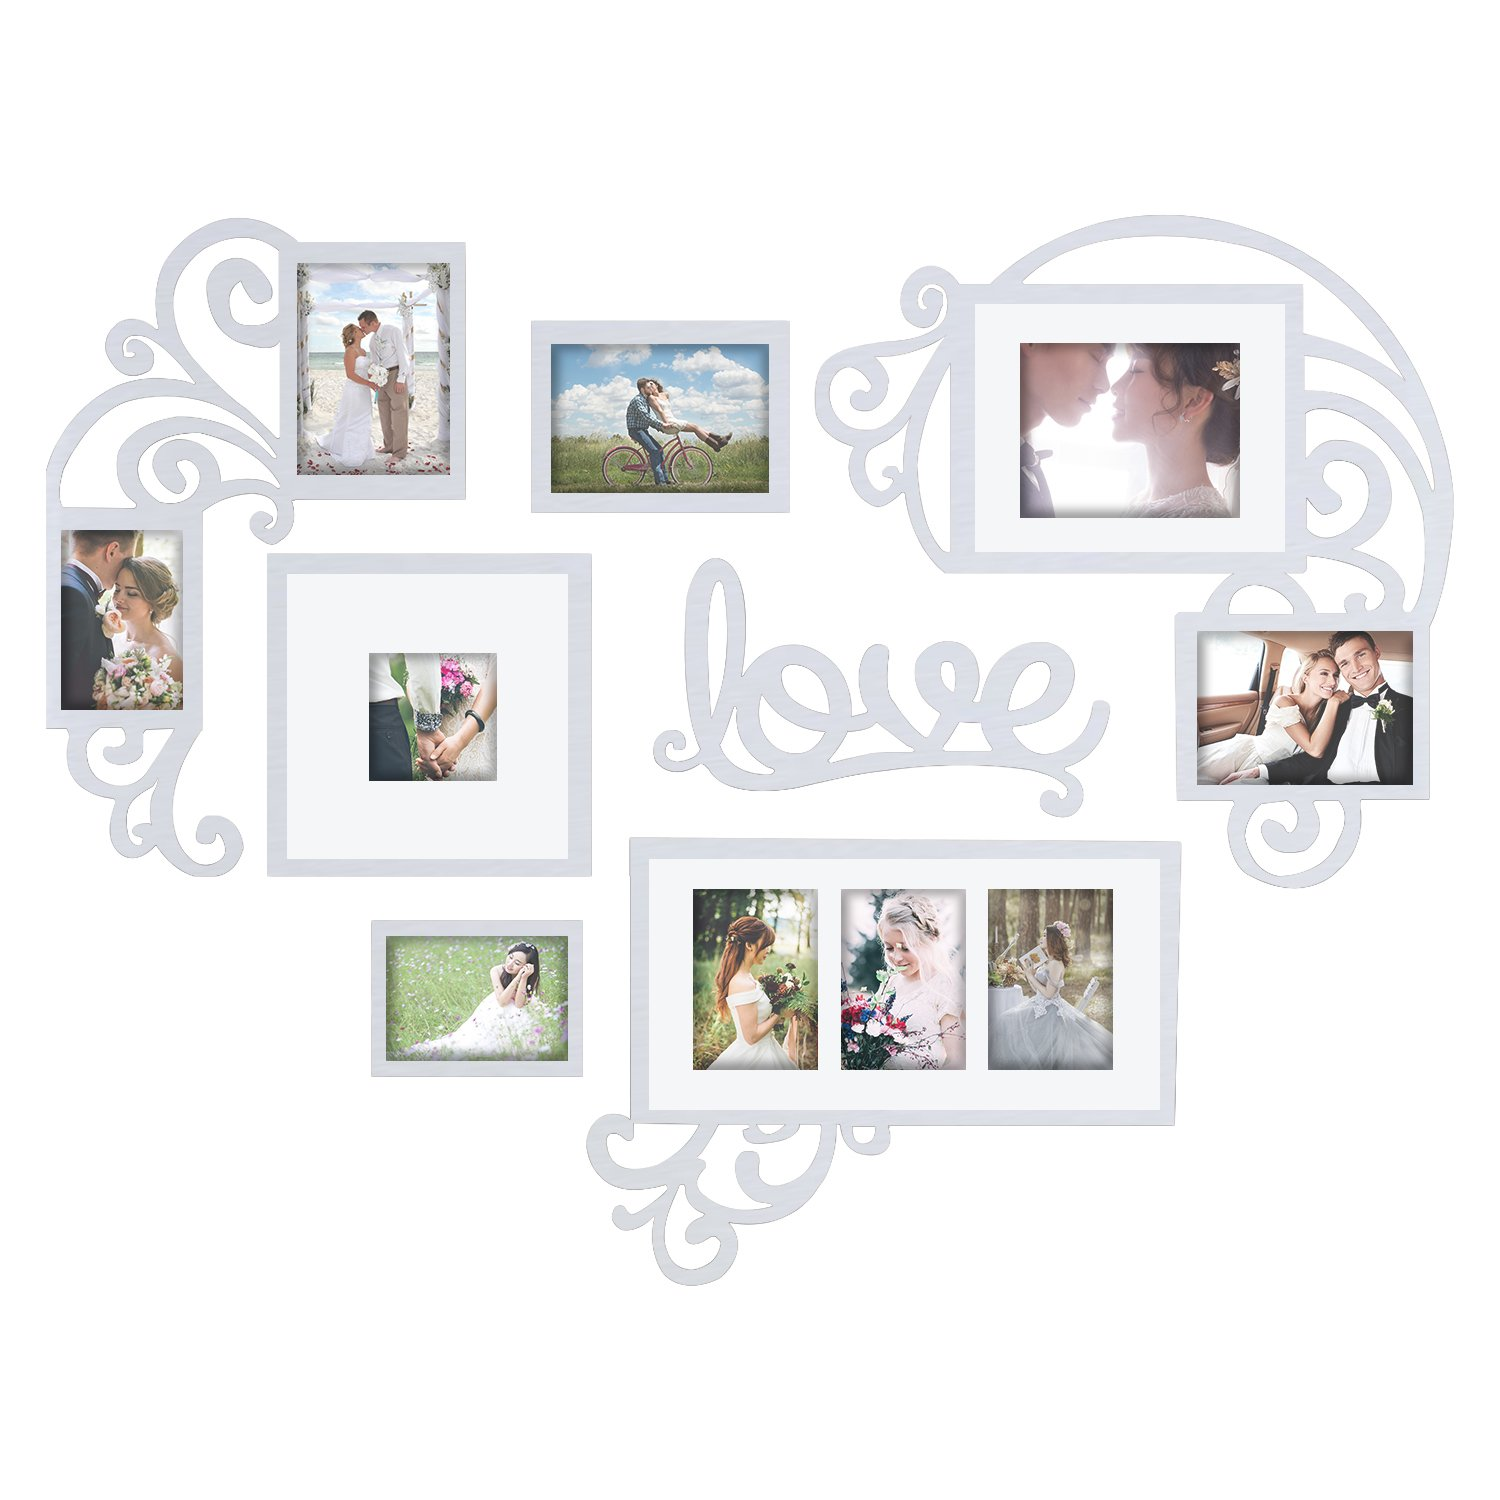 Hello Laura Heart Shape Love Photo Frame Picture Frame Set - Made to Display Three 4x6 Photos - Ready to Hang or Stand with Wall Mounting Hardware for Valentine Day Birthday Memories by Hello Laura